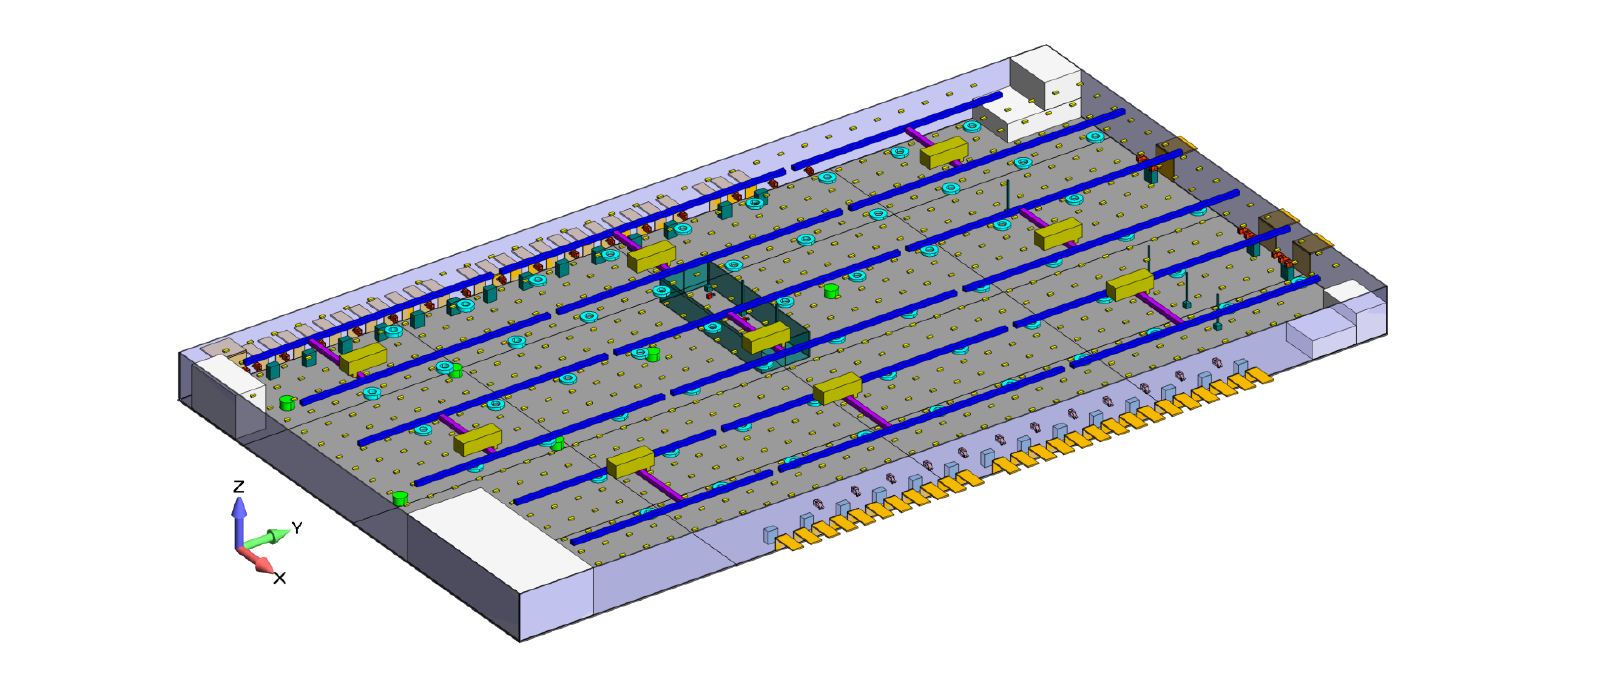 The CAD geometry of the piston pump is shown above. The CFD analysis focused on the internal fluid volume shown in green while the FEA focused on the cast structure shown in gray.